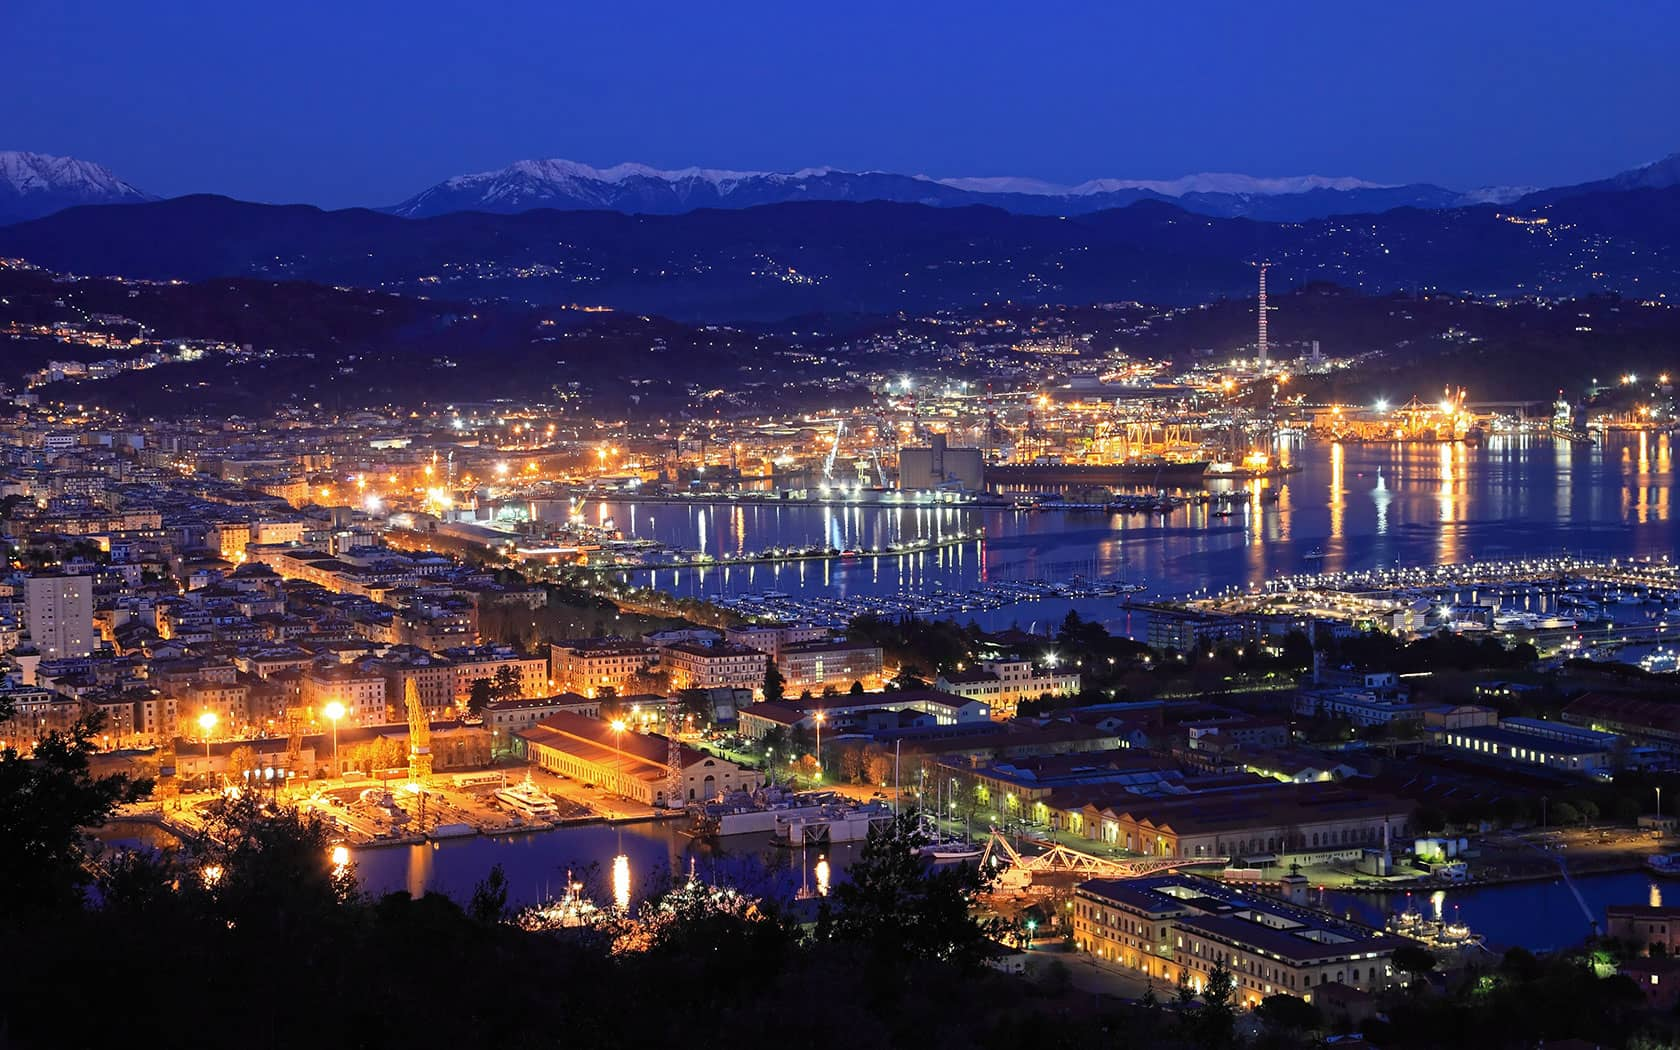 Tours Starting From La Spezia